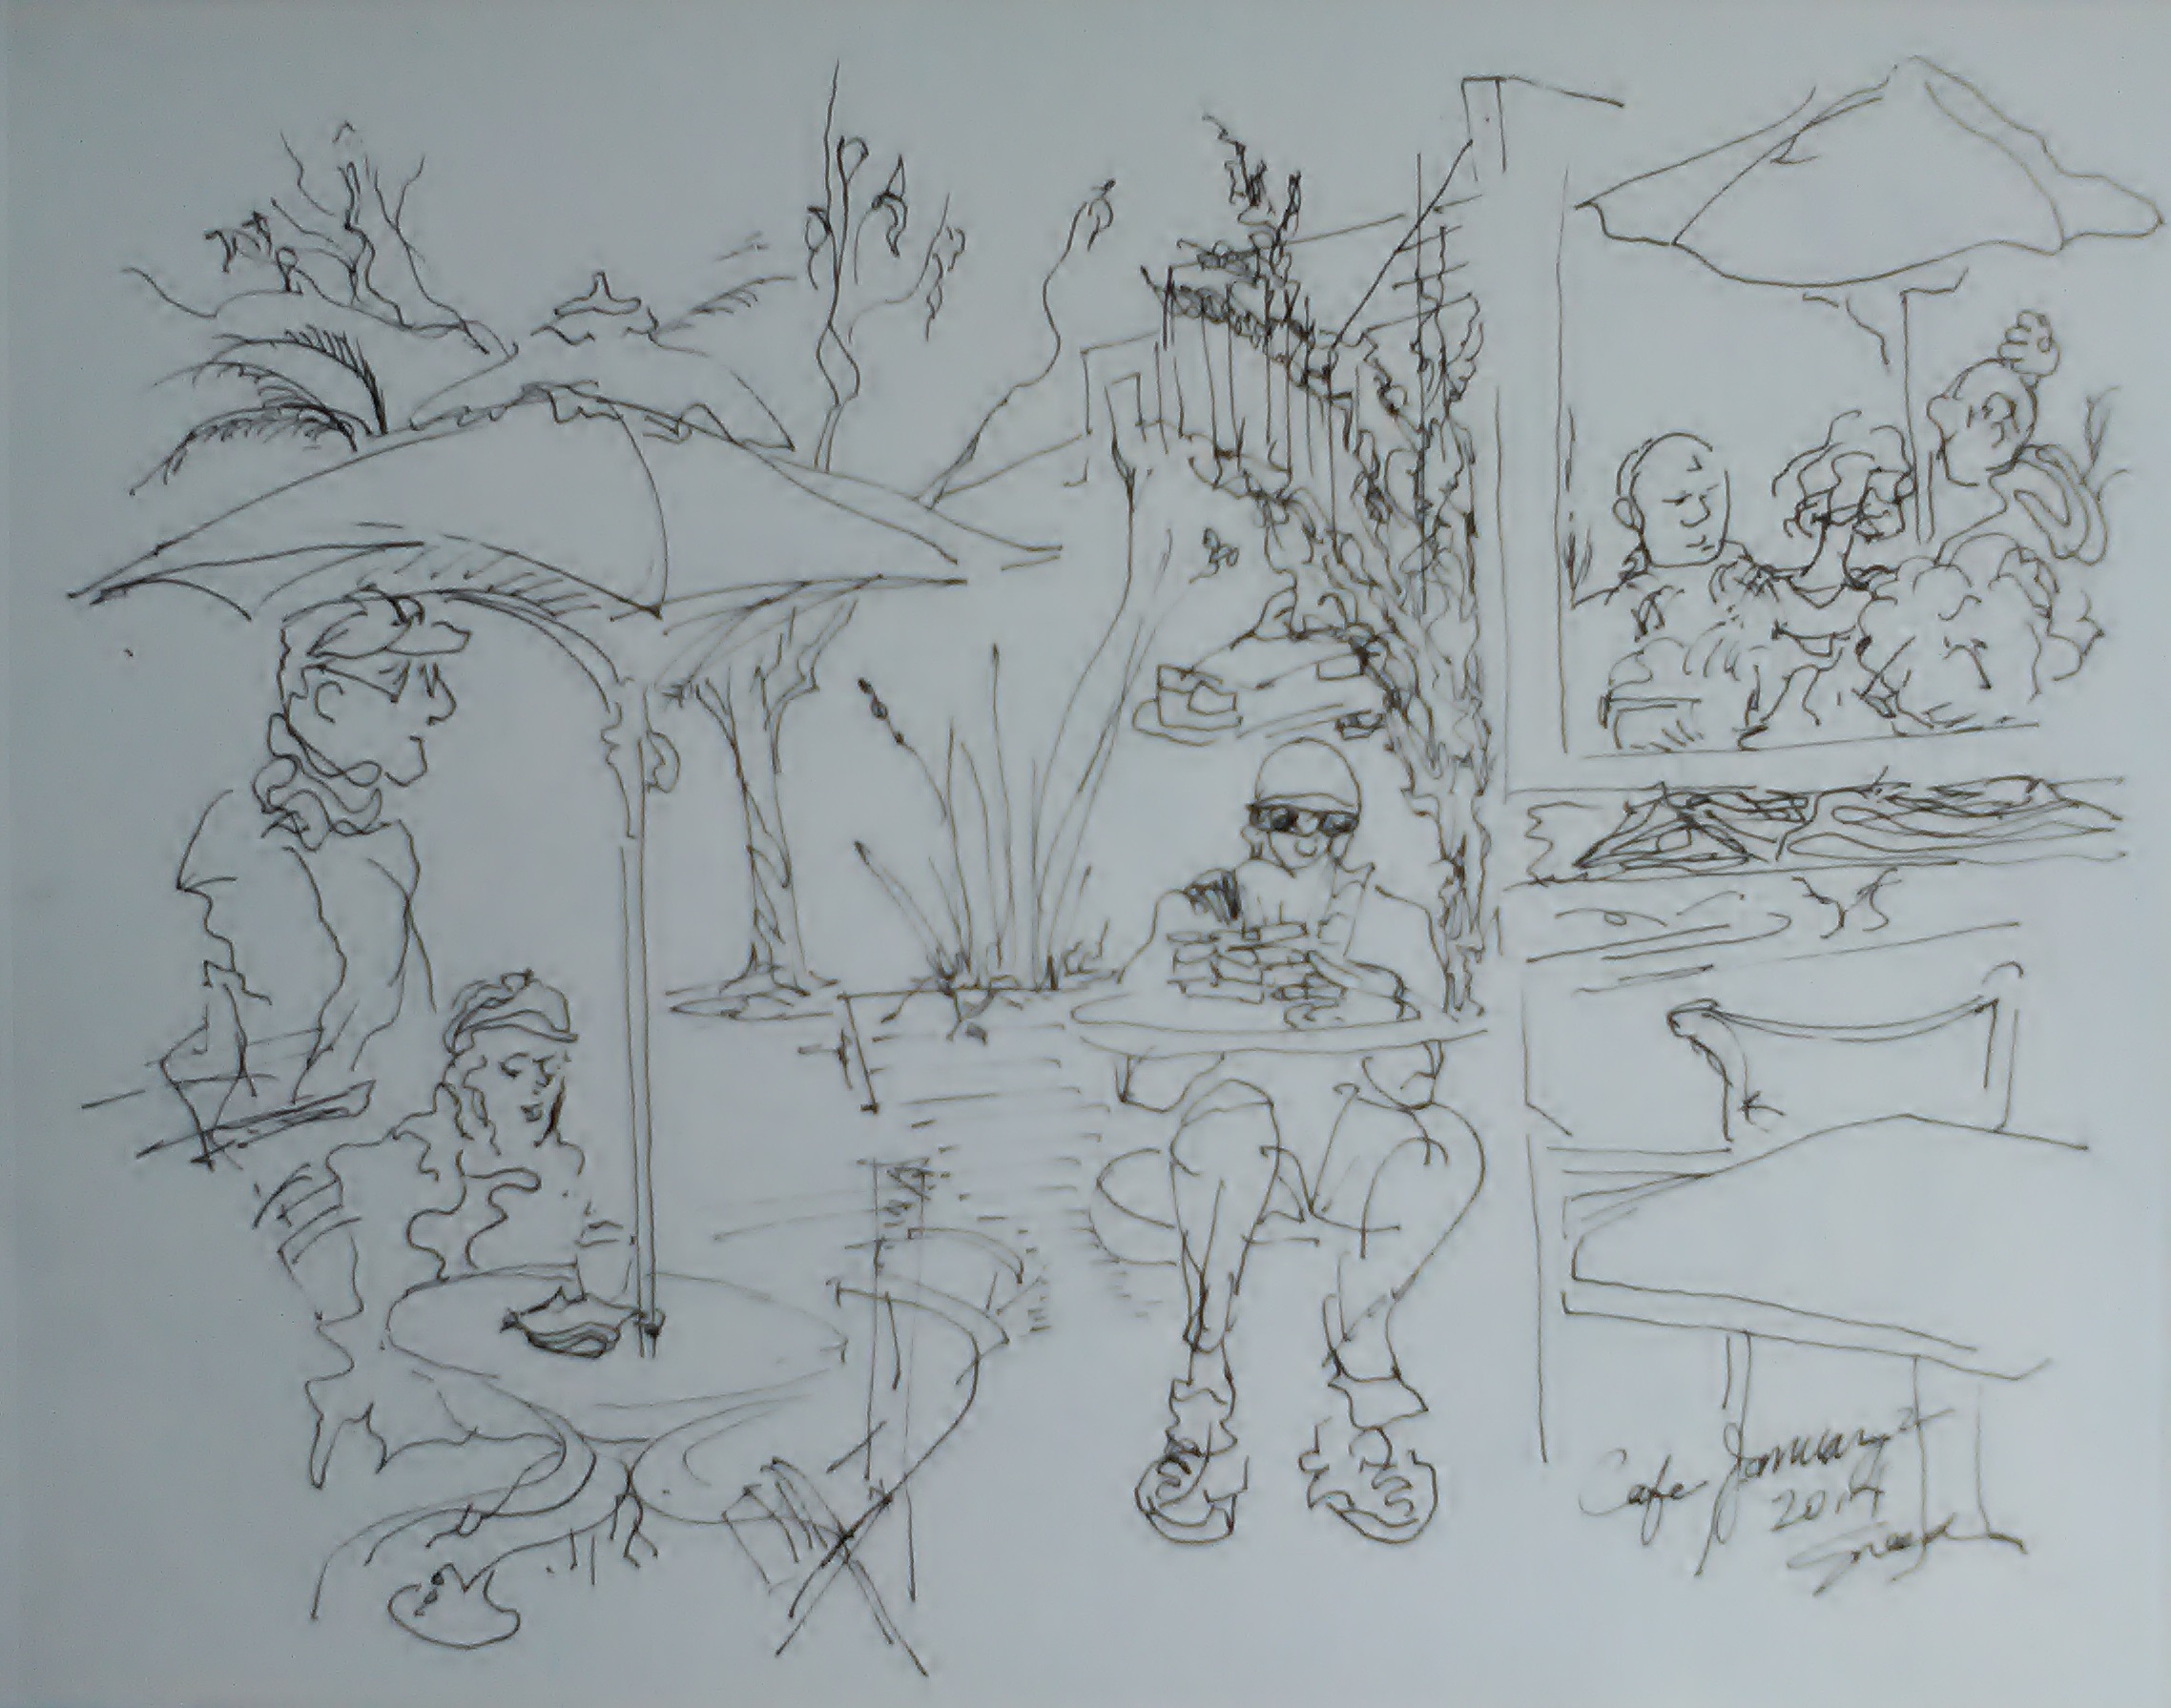 Cafe on 24th Street_2014